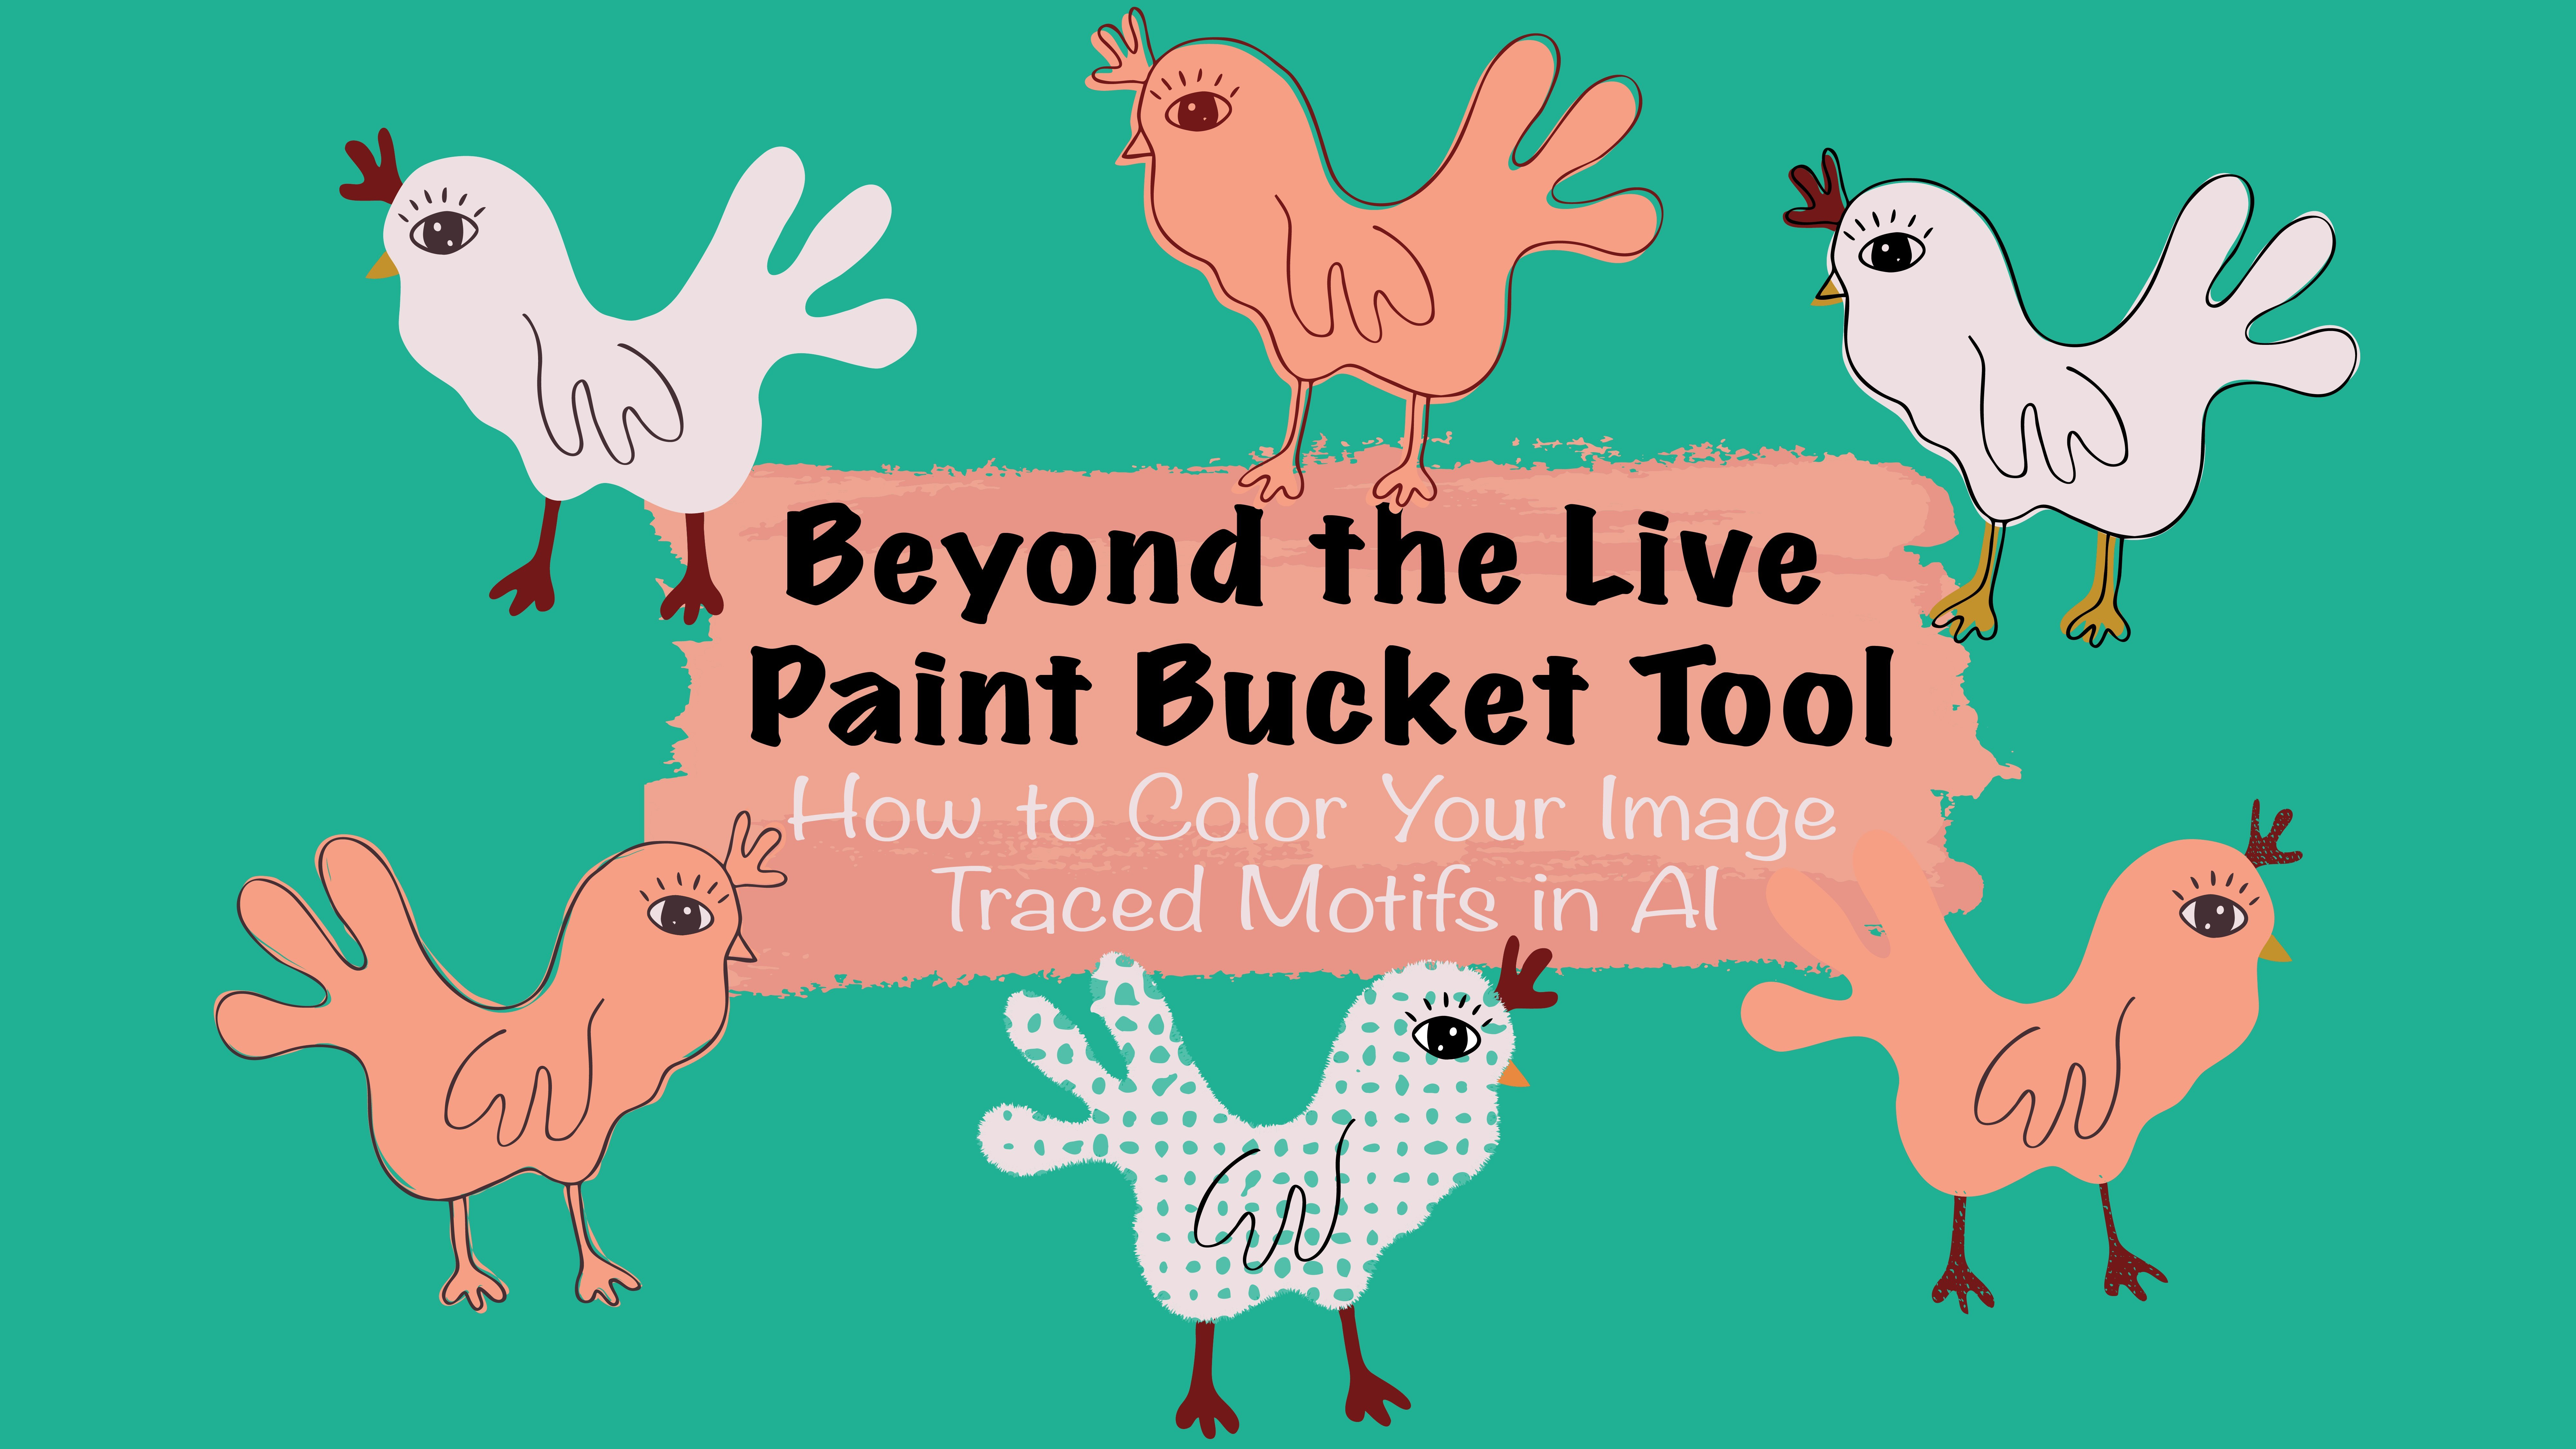 Beyond the Live Paint Bucket Tool - Color your Image Traced Motifs ...